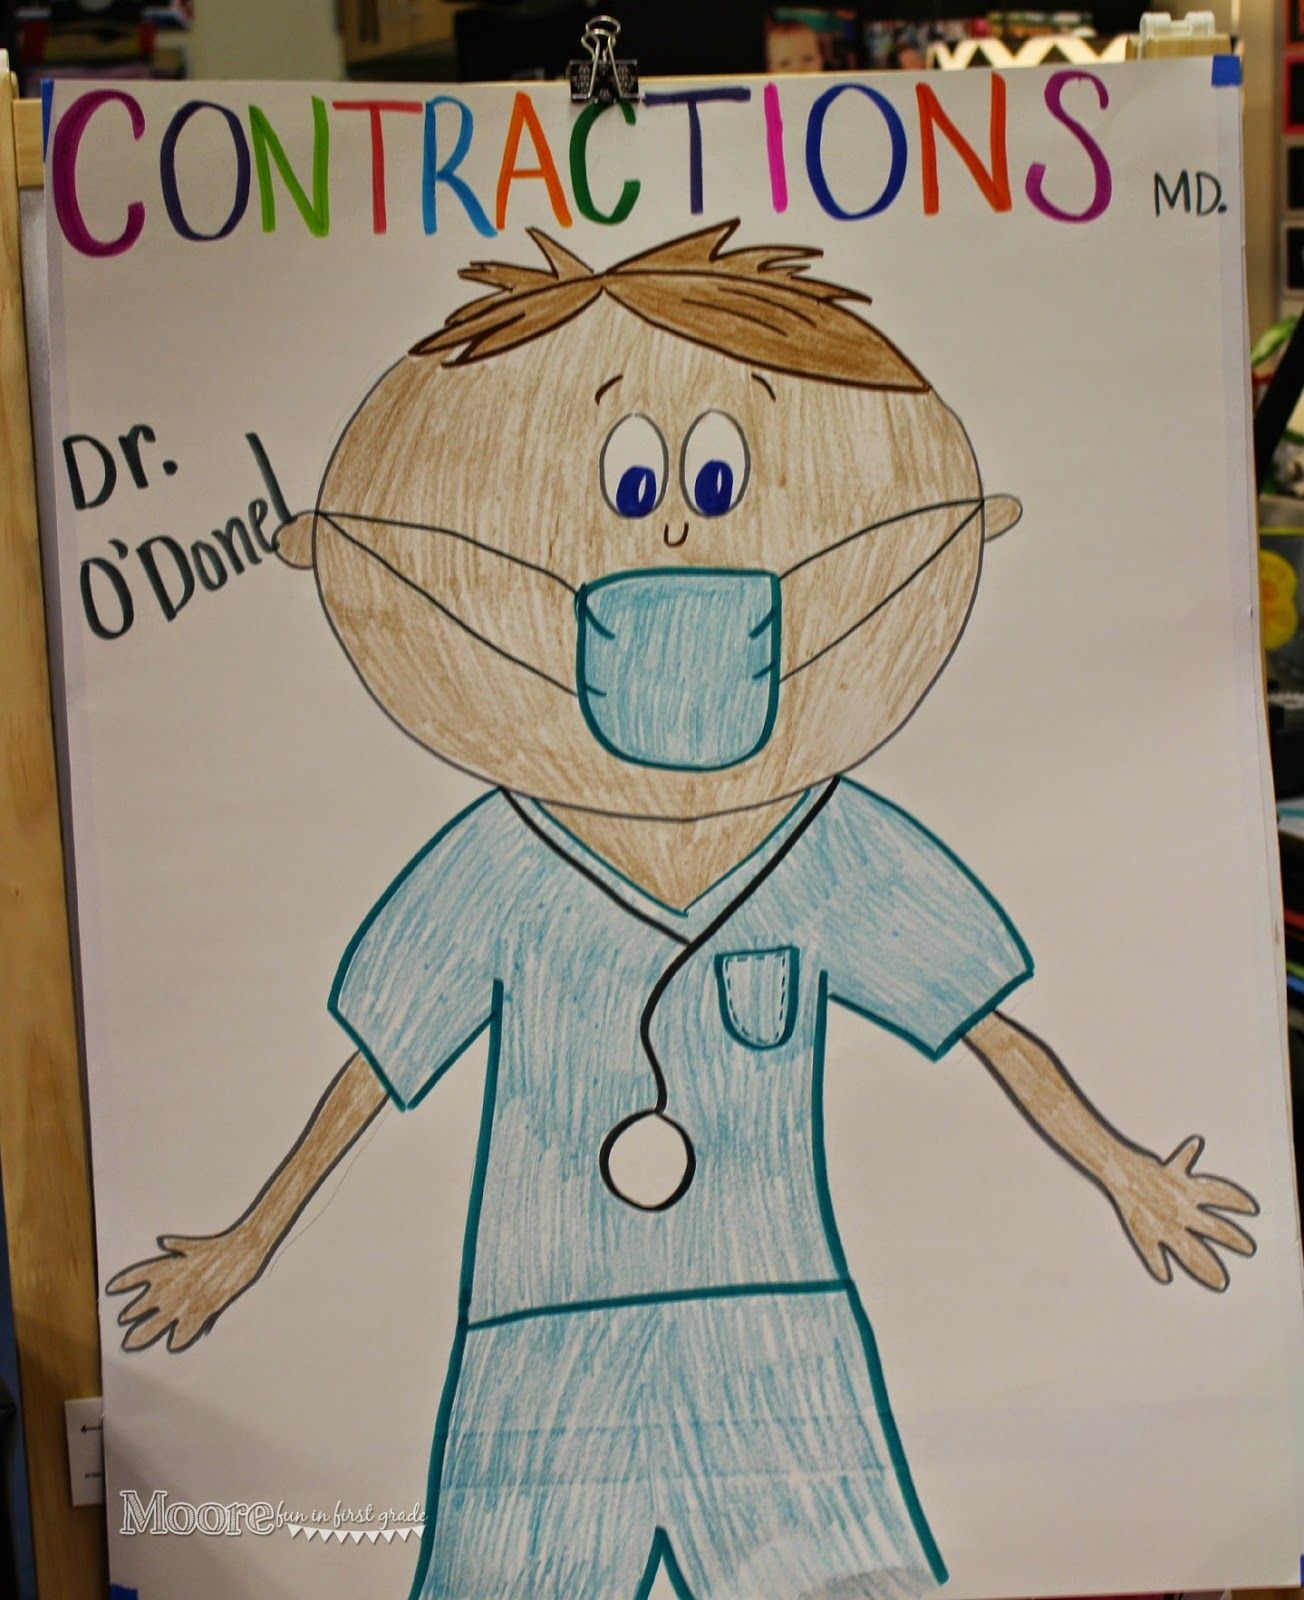 Contractions Are Way More Fun When You Can Pretend To Be A Surgeon My Kiddos Did So Great With